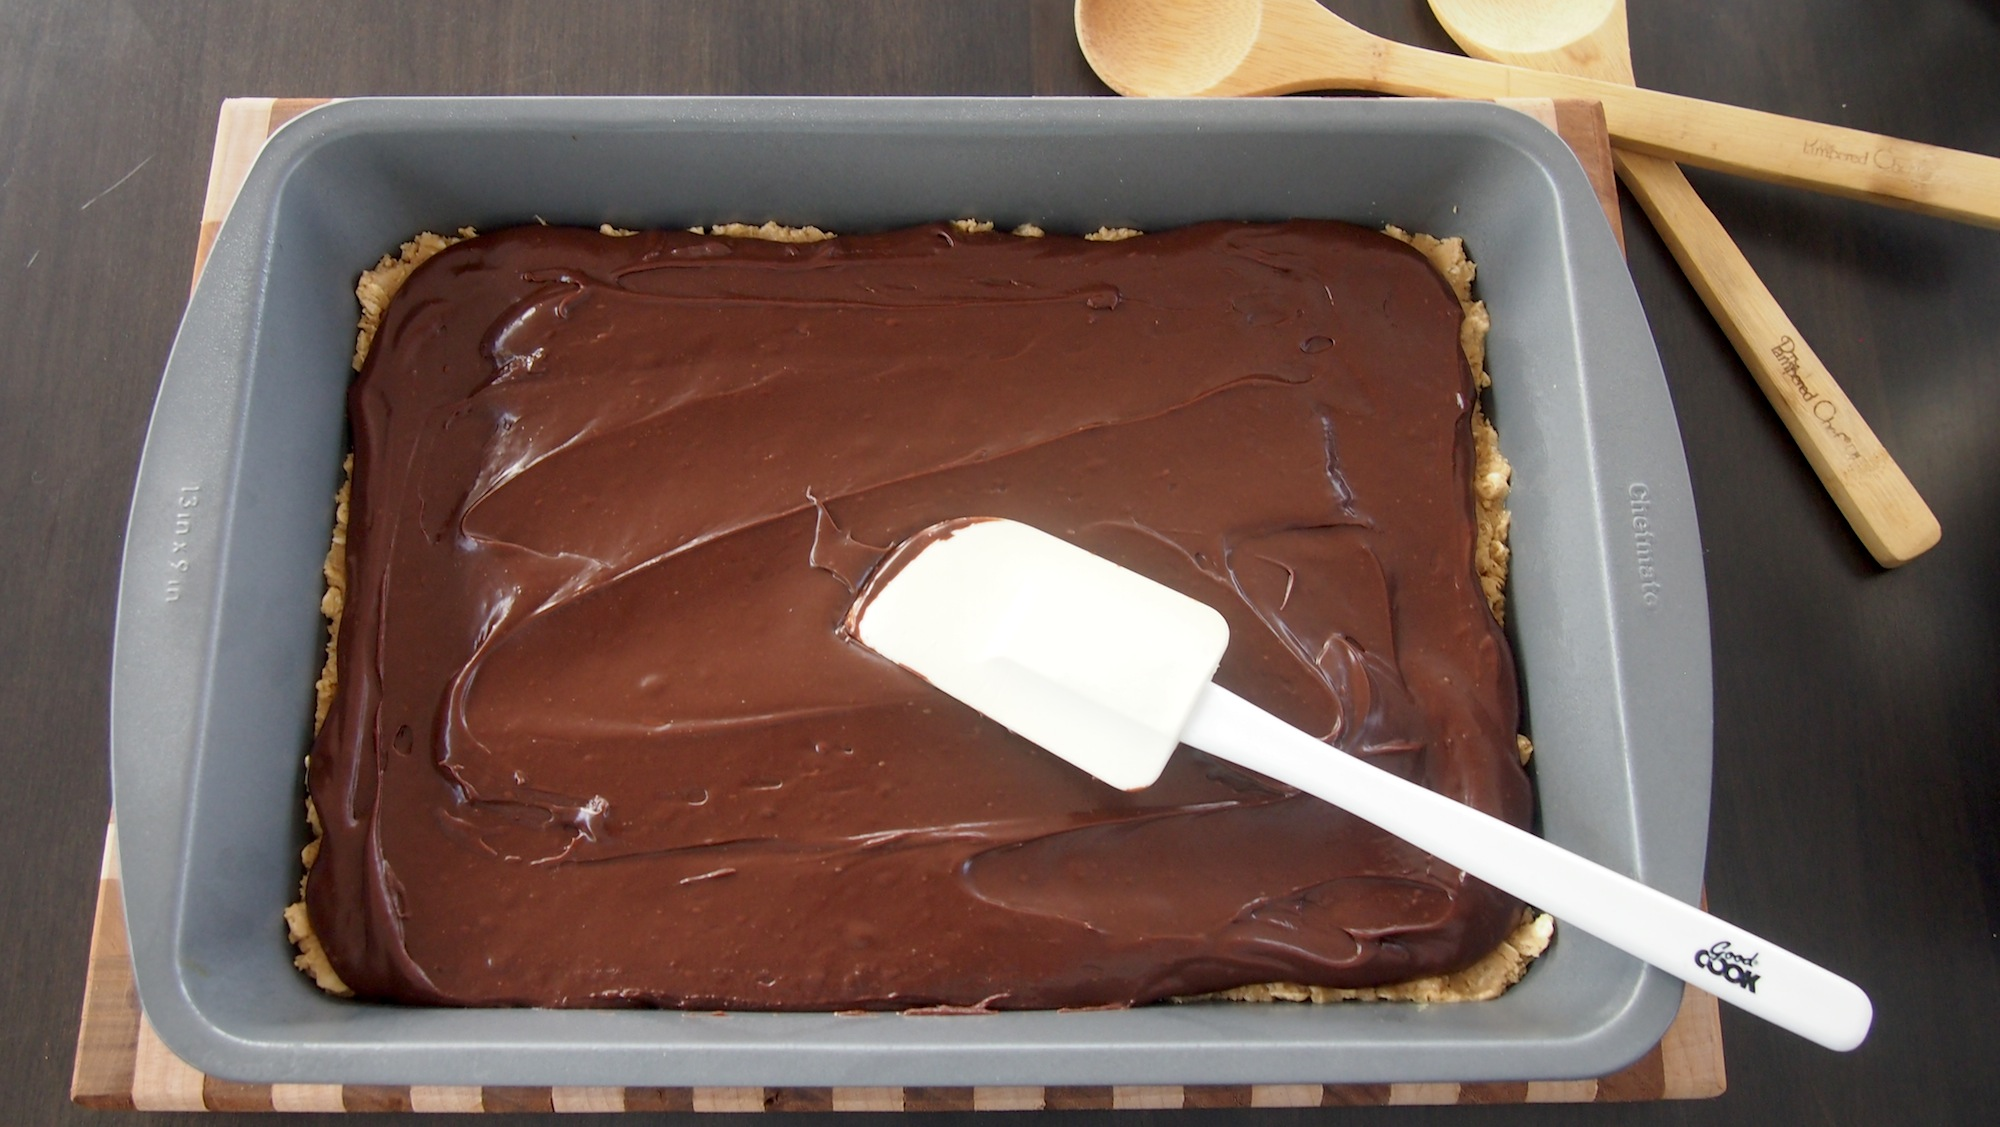 The chocolate mixture is spread on top of a layer of the oatmeal mixture pressed into the pan.